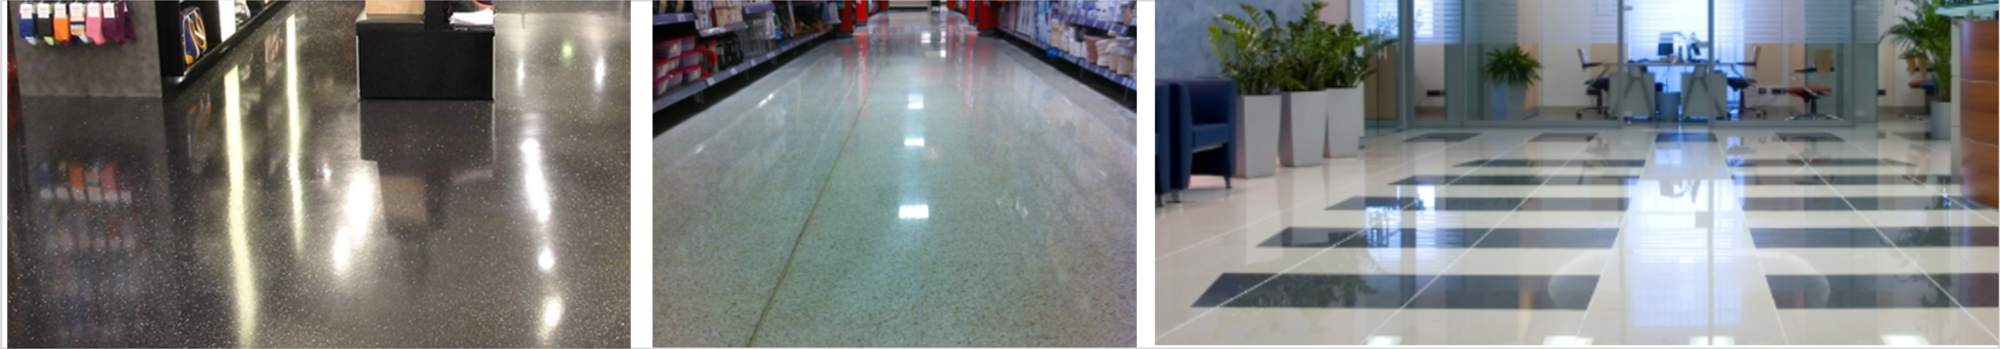 Floors Restoration and Sealing Image